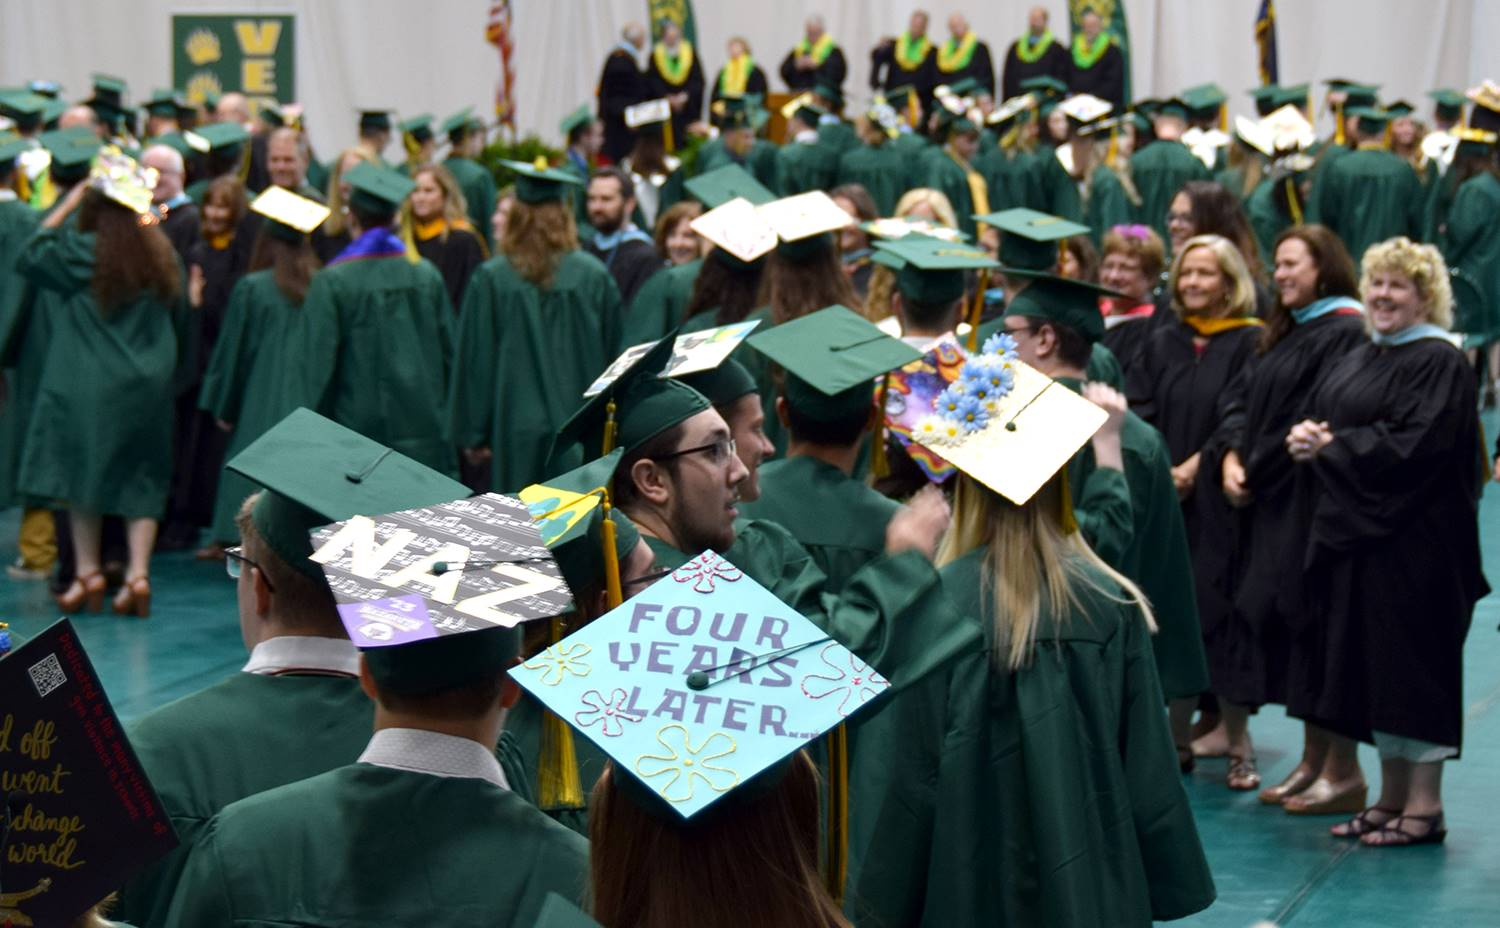 Teachers greet the graduation candidates as they enter the floor of the Events Center to take their